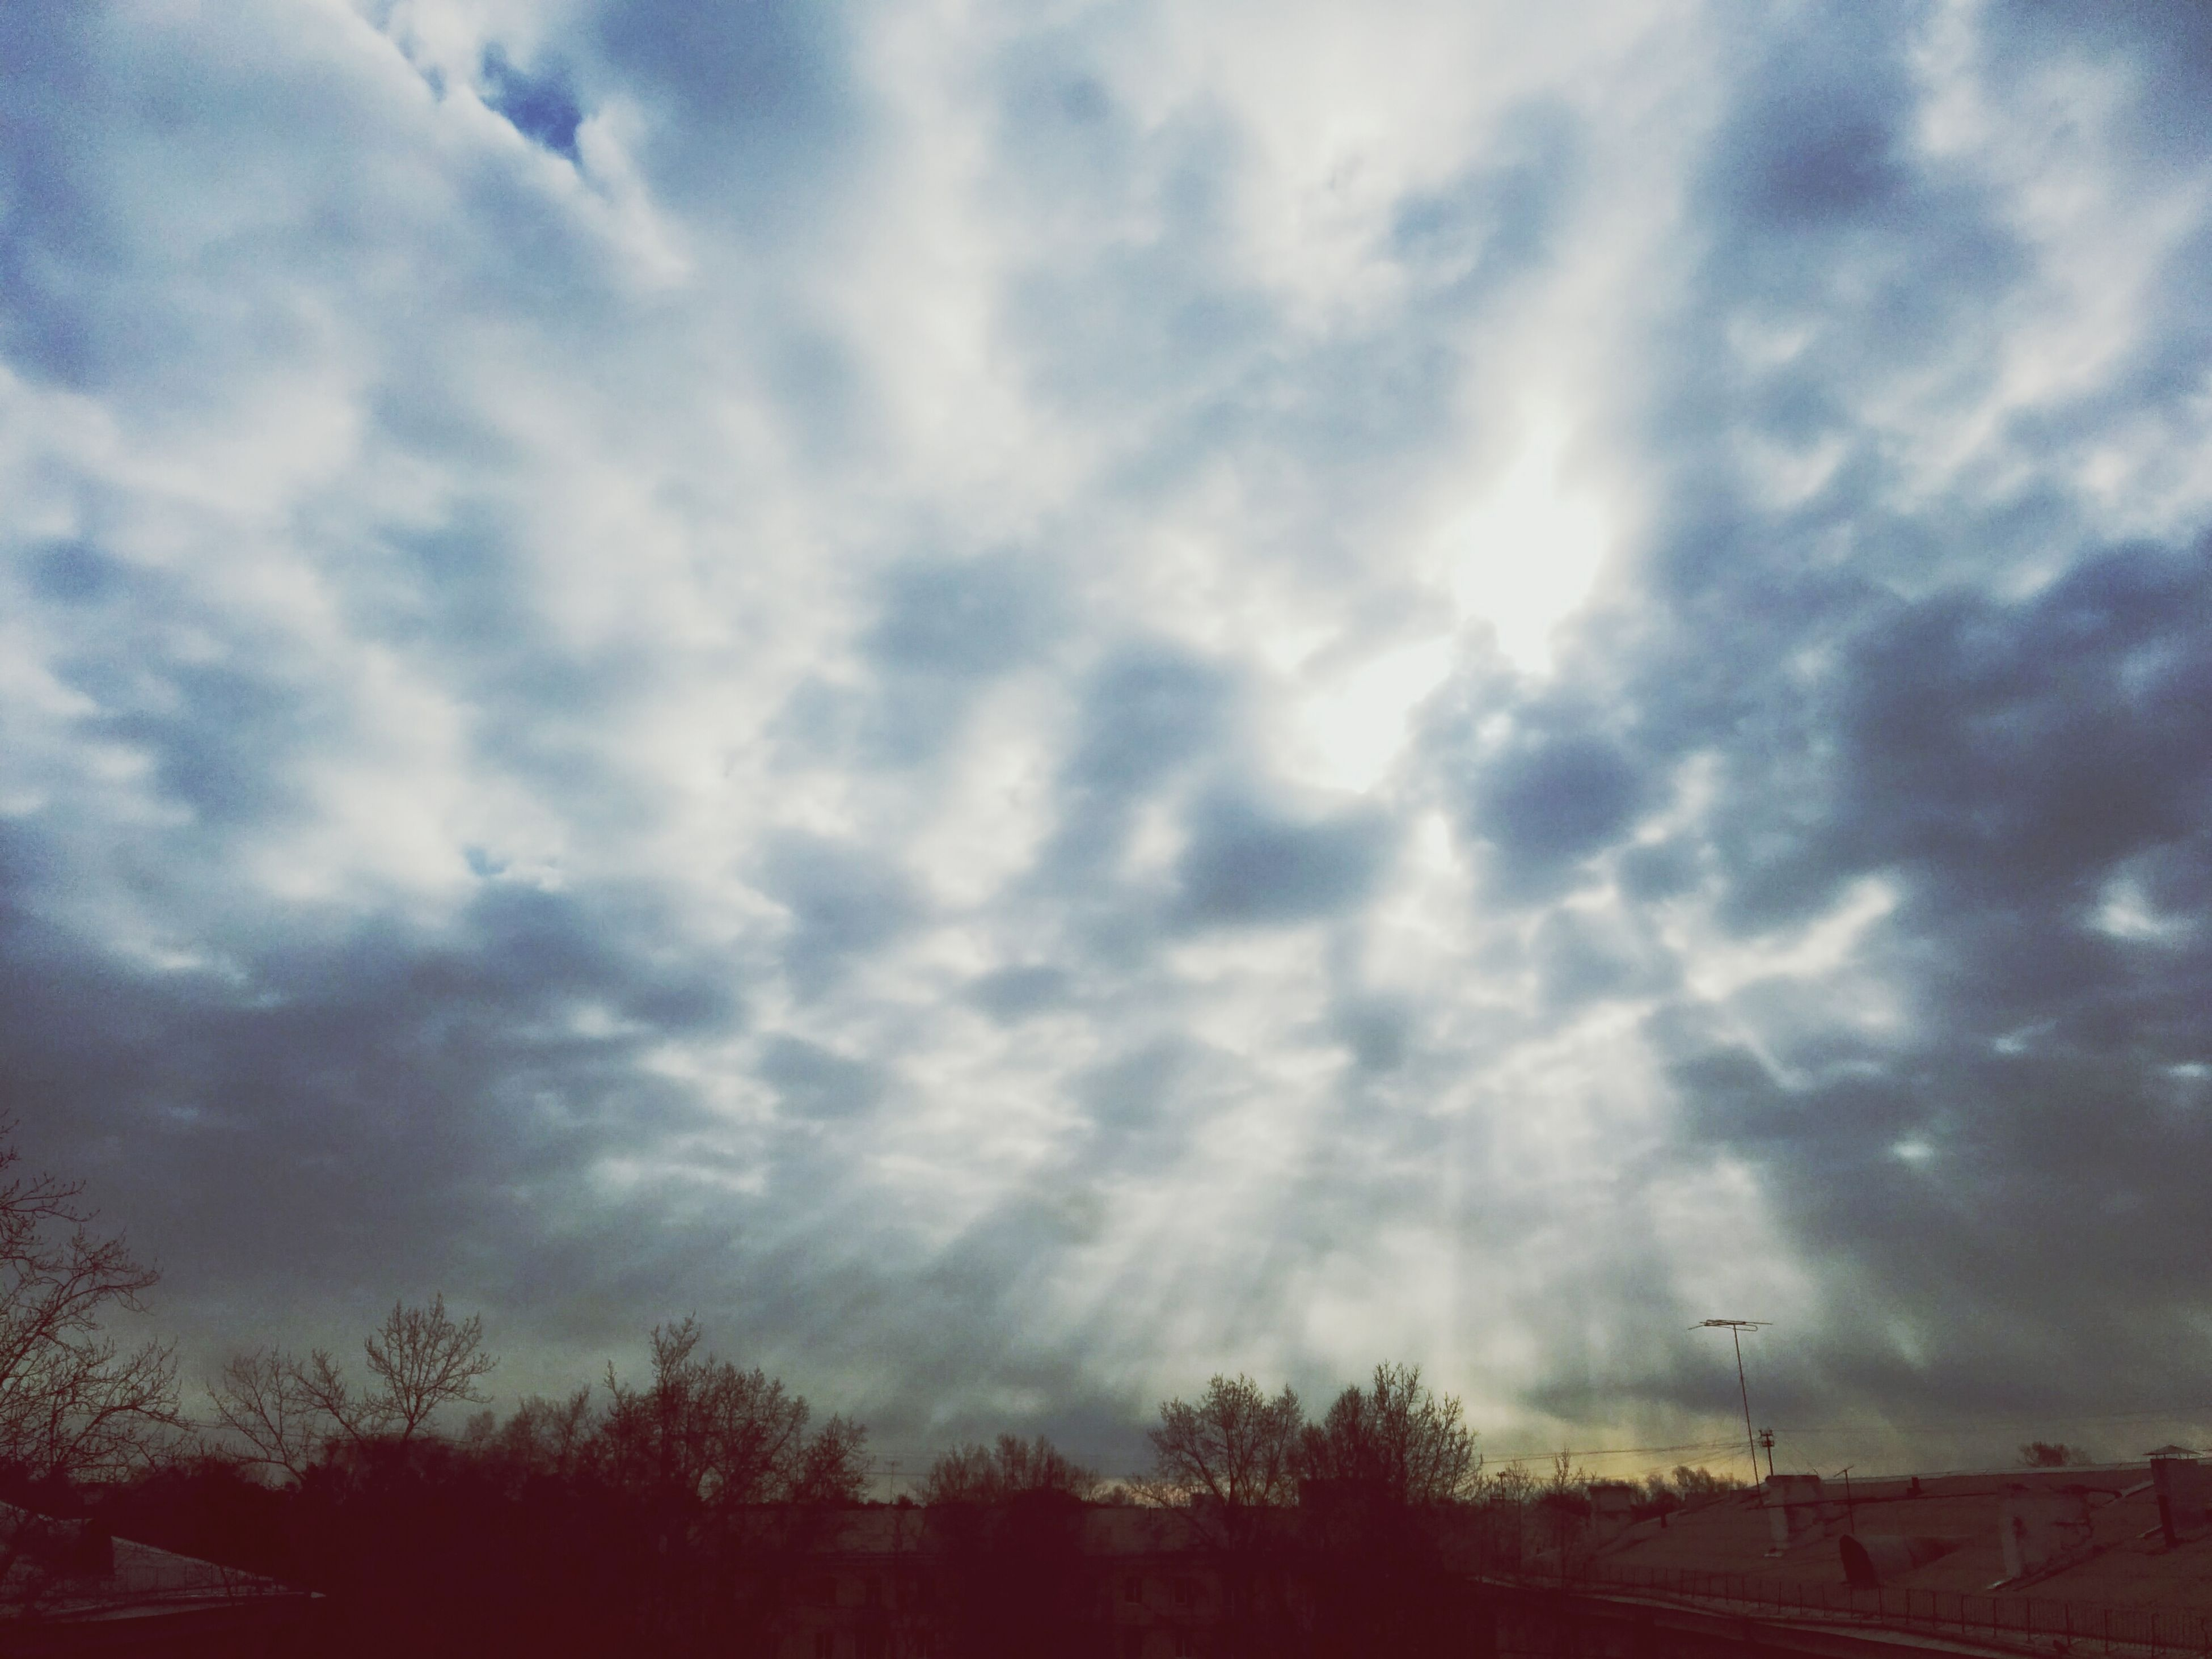 sky, cloud - sky, low angle view, tree, cloudy, silhouette, tranquility, beauty in nature, scenics, nature, tranquil scene, cloud, weather, cloudscape, overcast, outdoors, idyllic, high section, no people, storm cloud